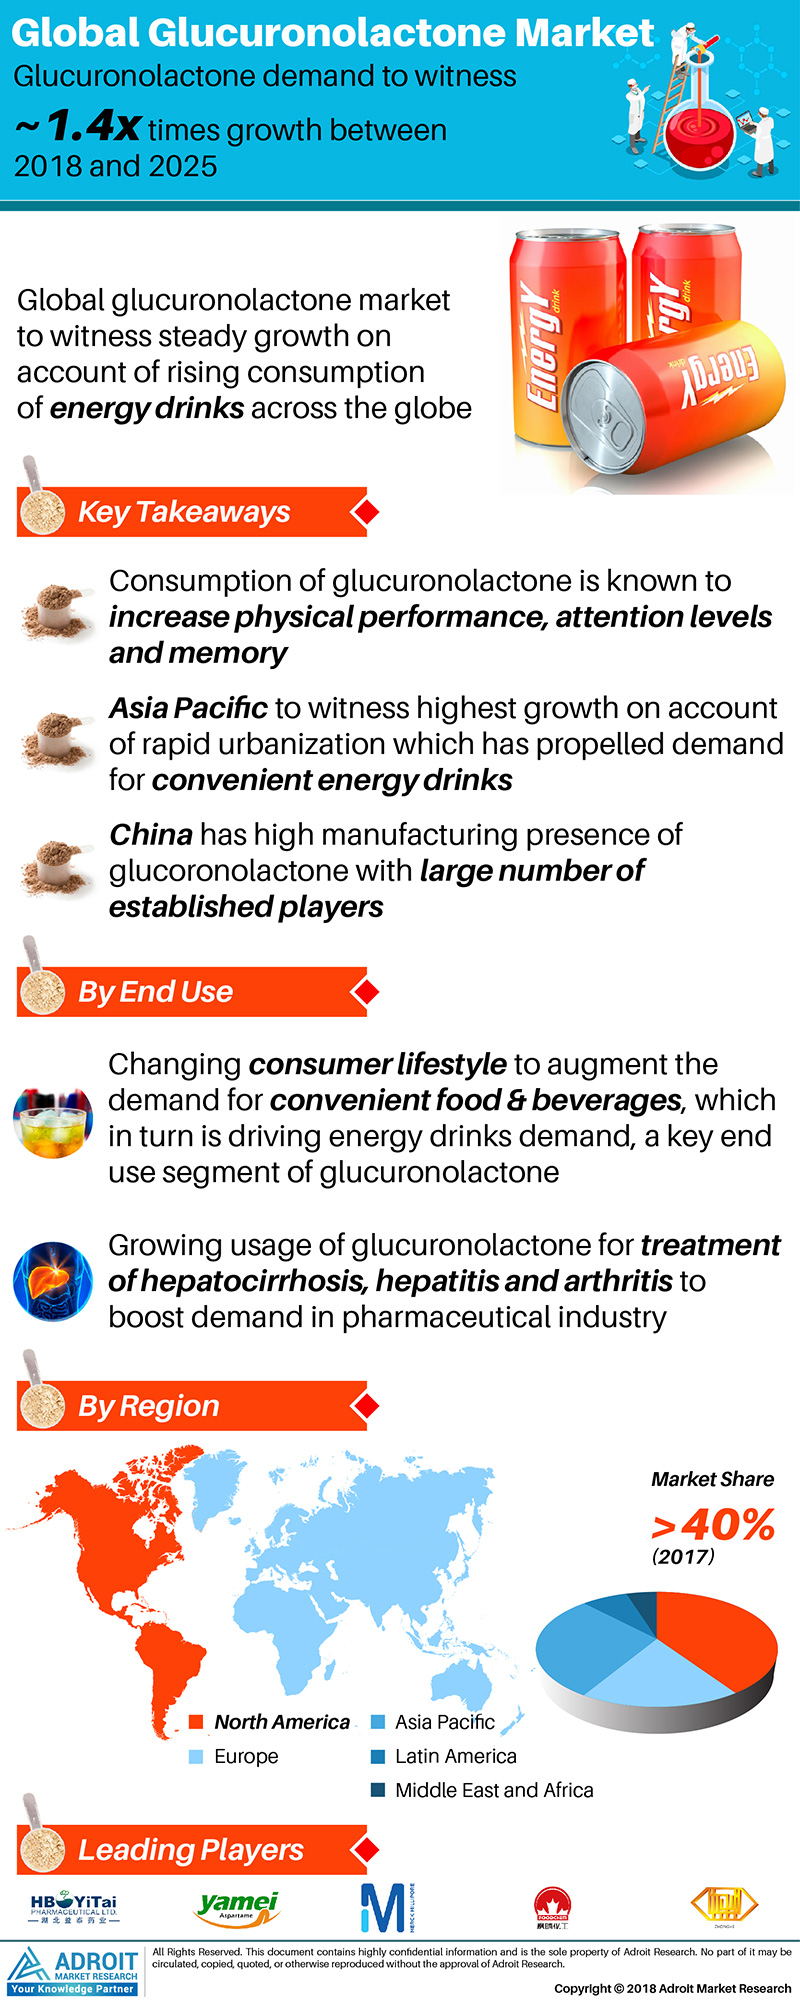 Global Glucuronolactone Market 2019 Research Report, by Types, Application, Key Players, Analysis by Drivers, Restraints, Retailer Strategies, Competitor Performance & Geography Forecast 2025 5